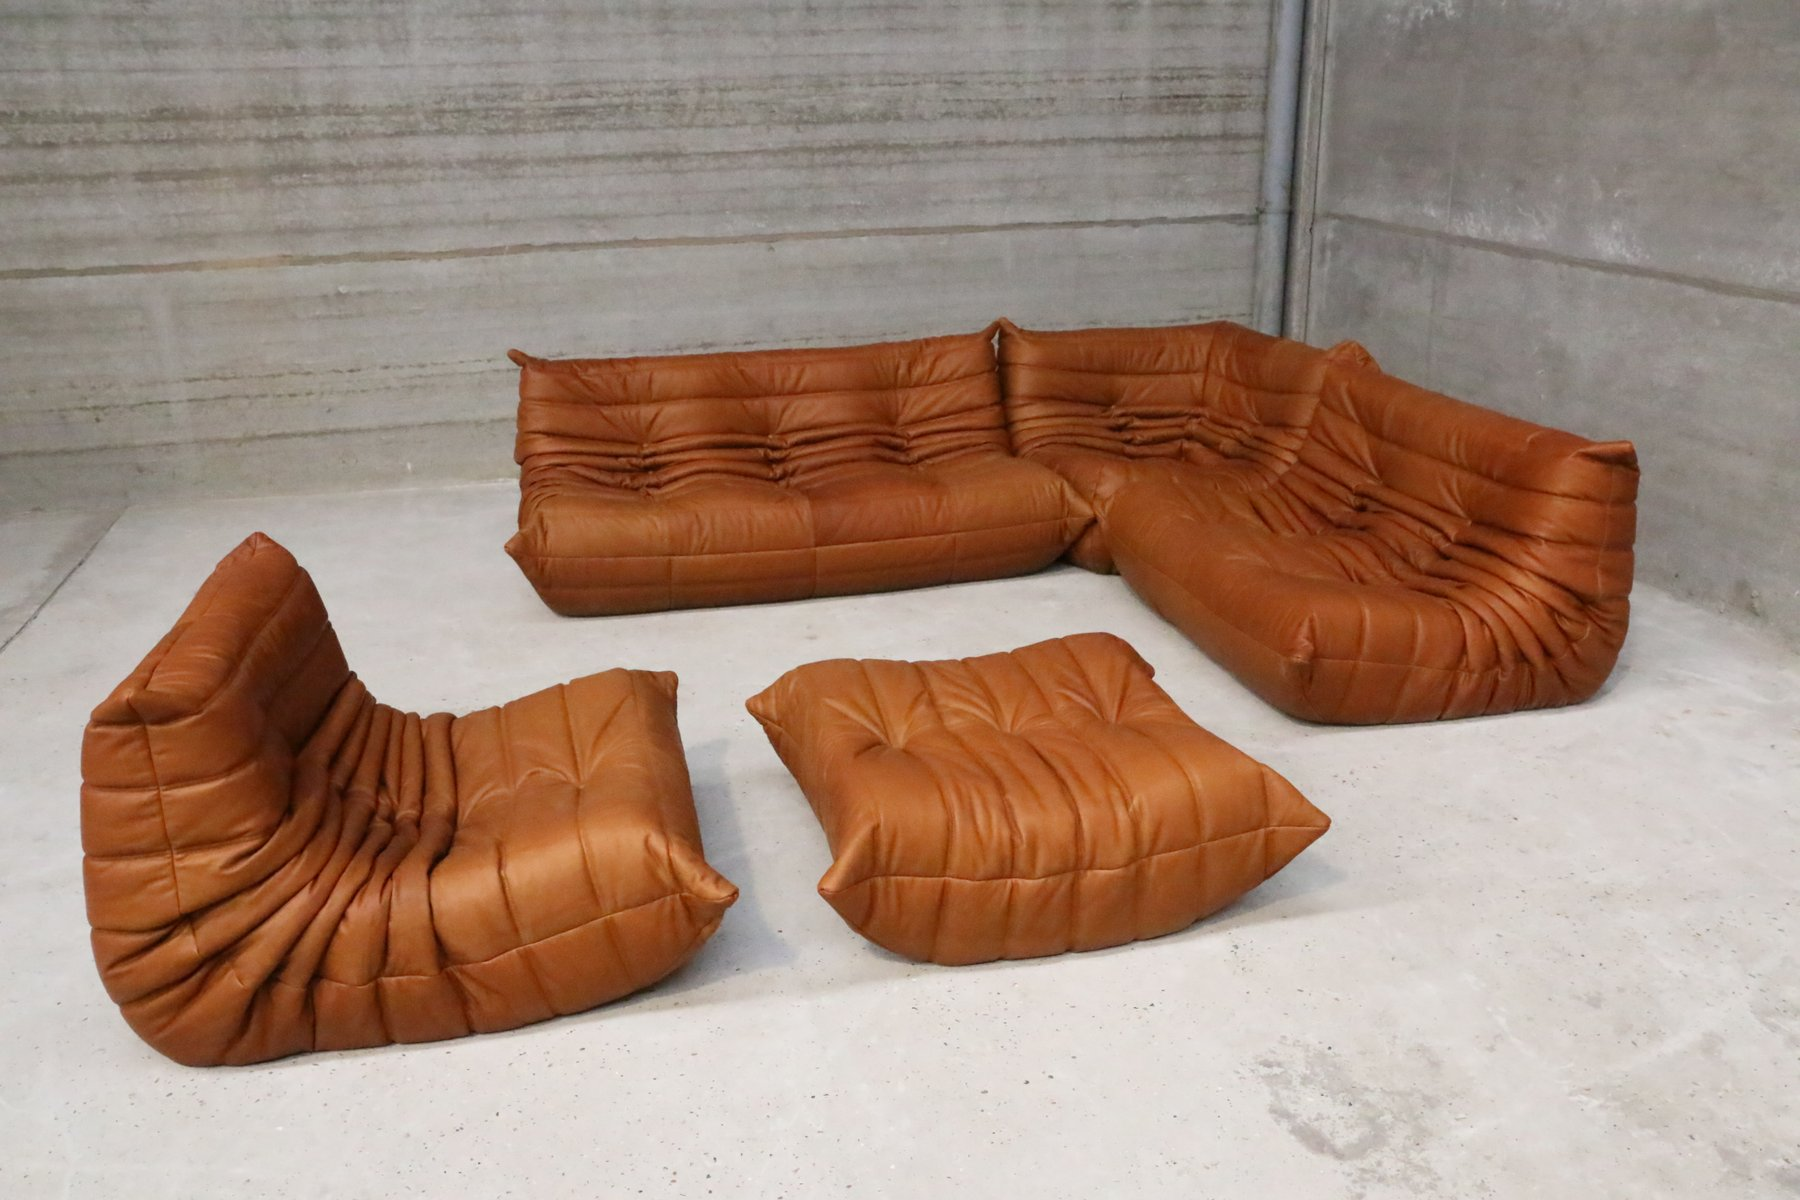 set de canap s togo vintage en cuir cognac par michel ducaroy pour ligne roset en vente sur pamono. Black Bedroom Furniture Sets. Home Design Ideas